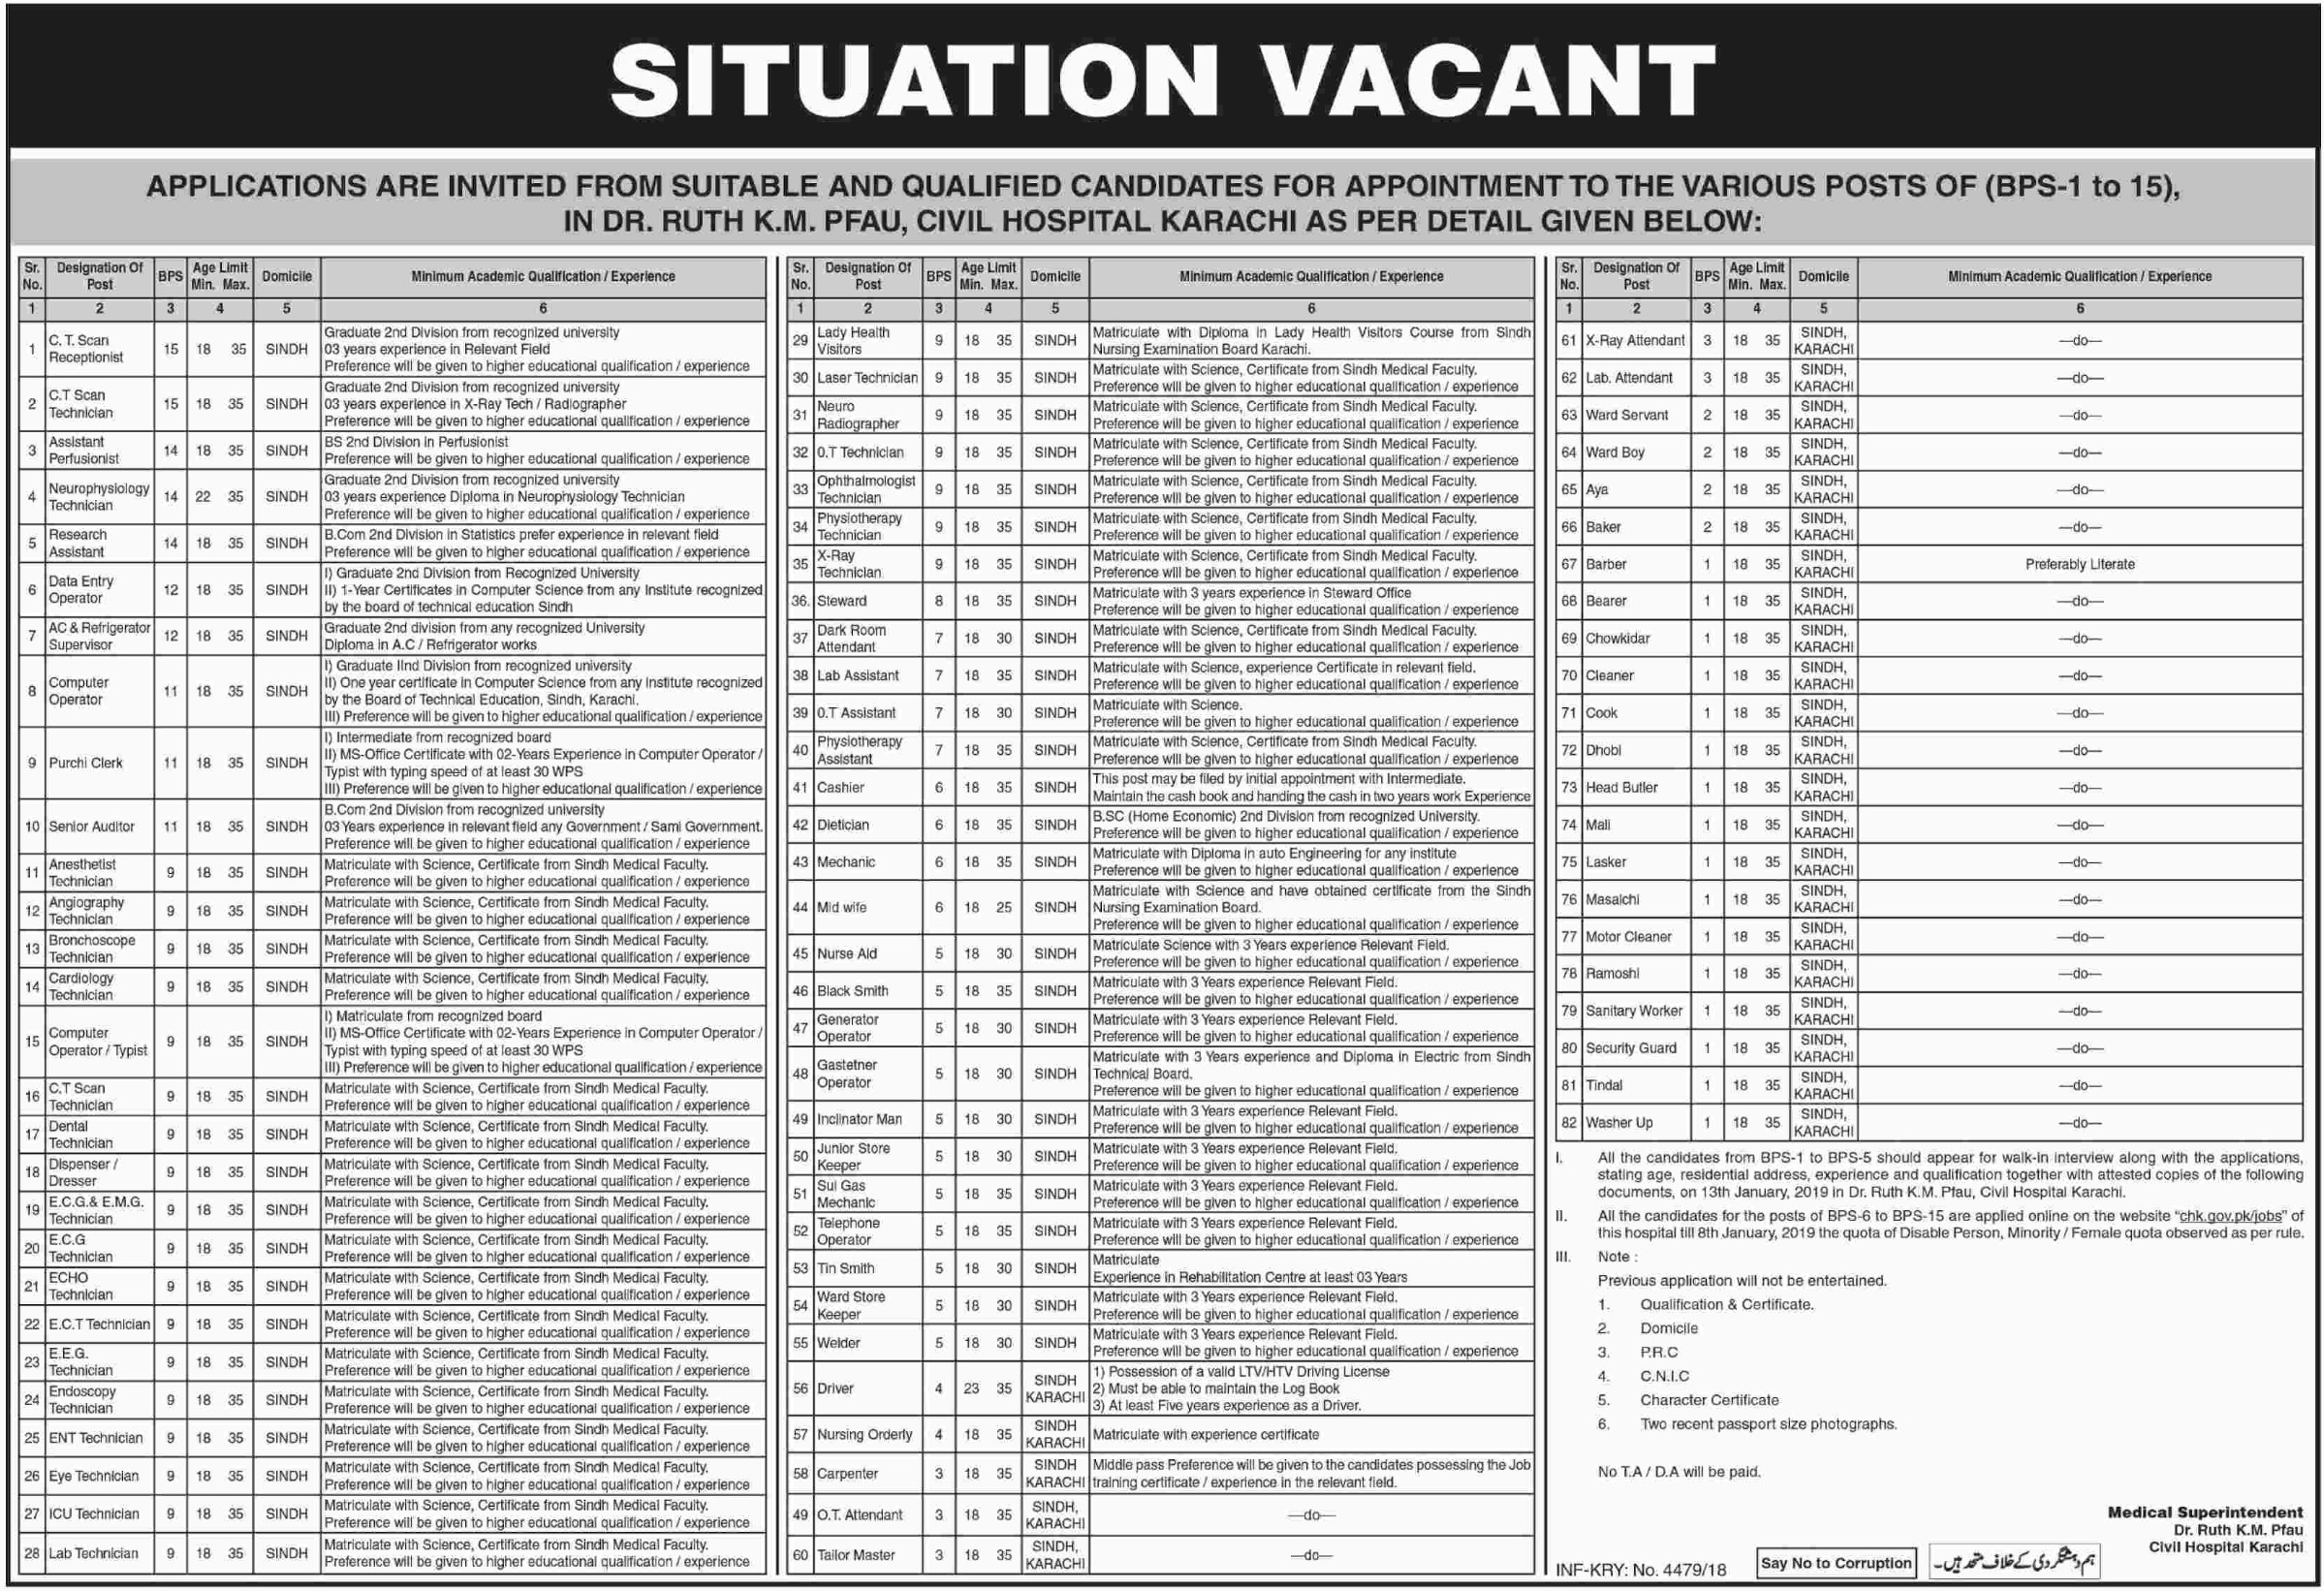 Civil Hospital Karachi Jobs 2018 Government of Sindh